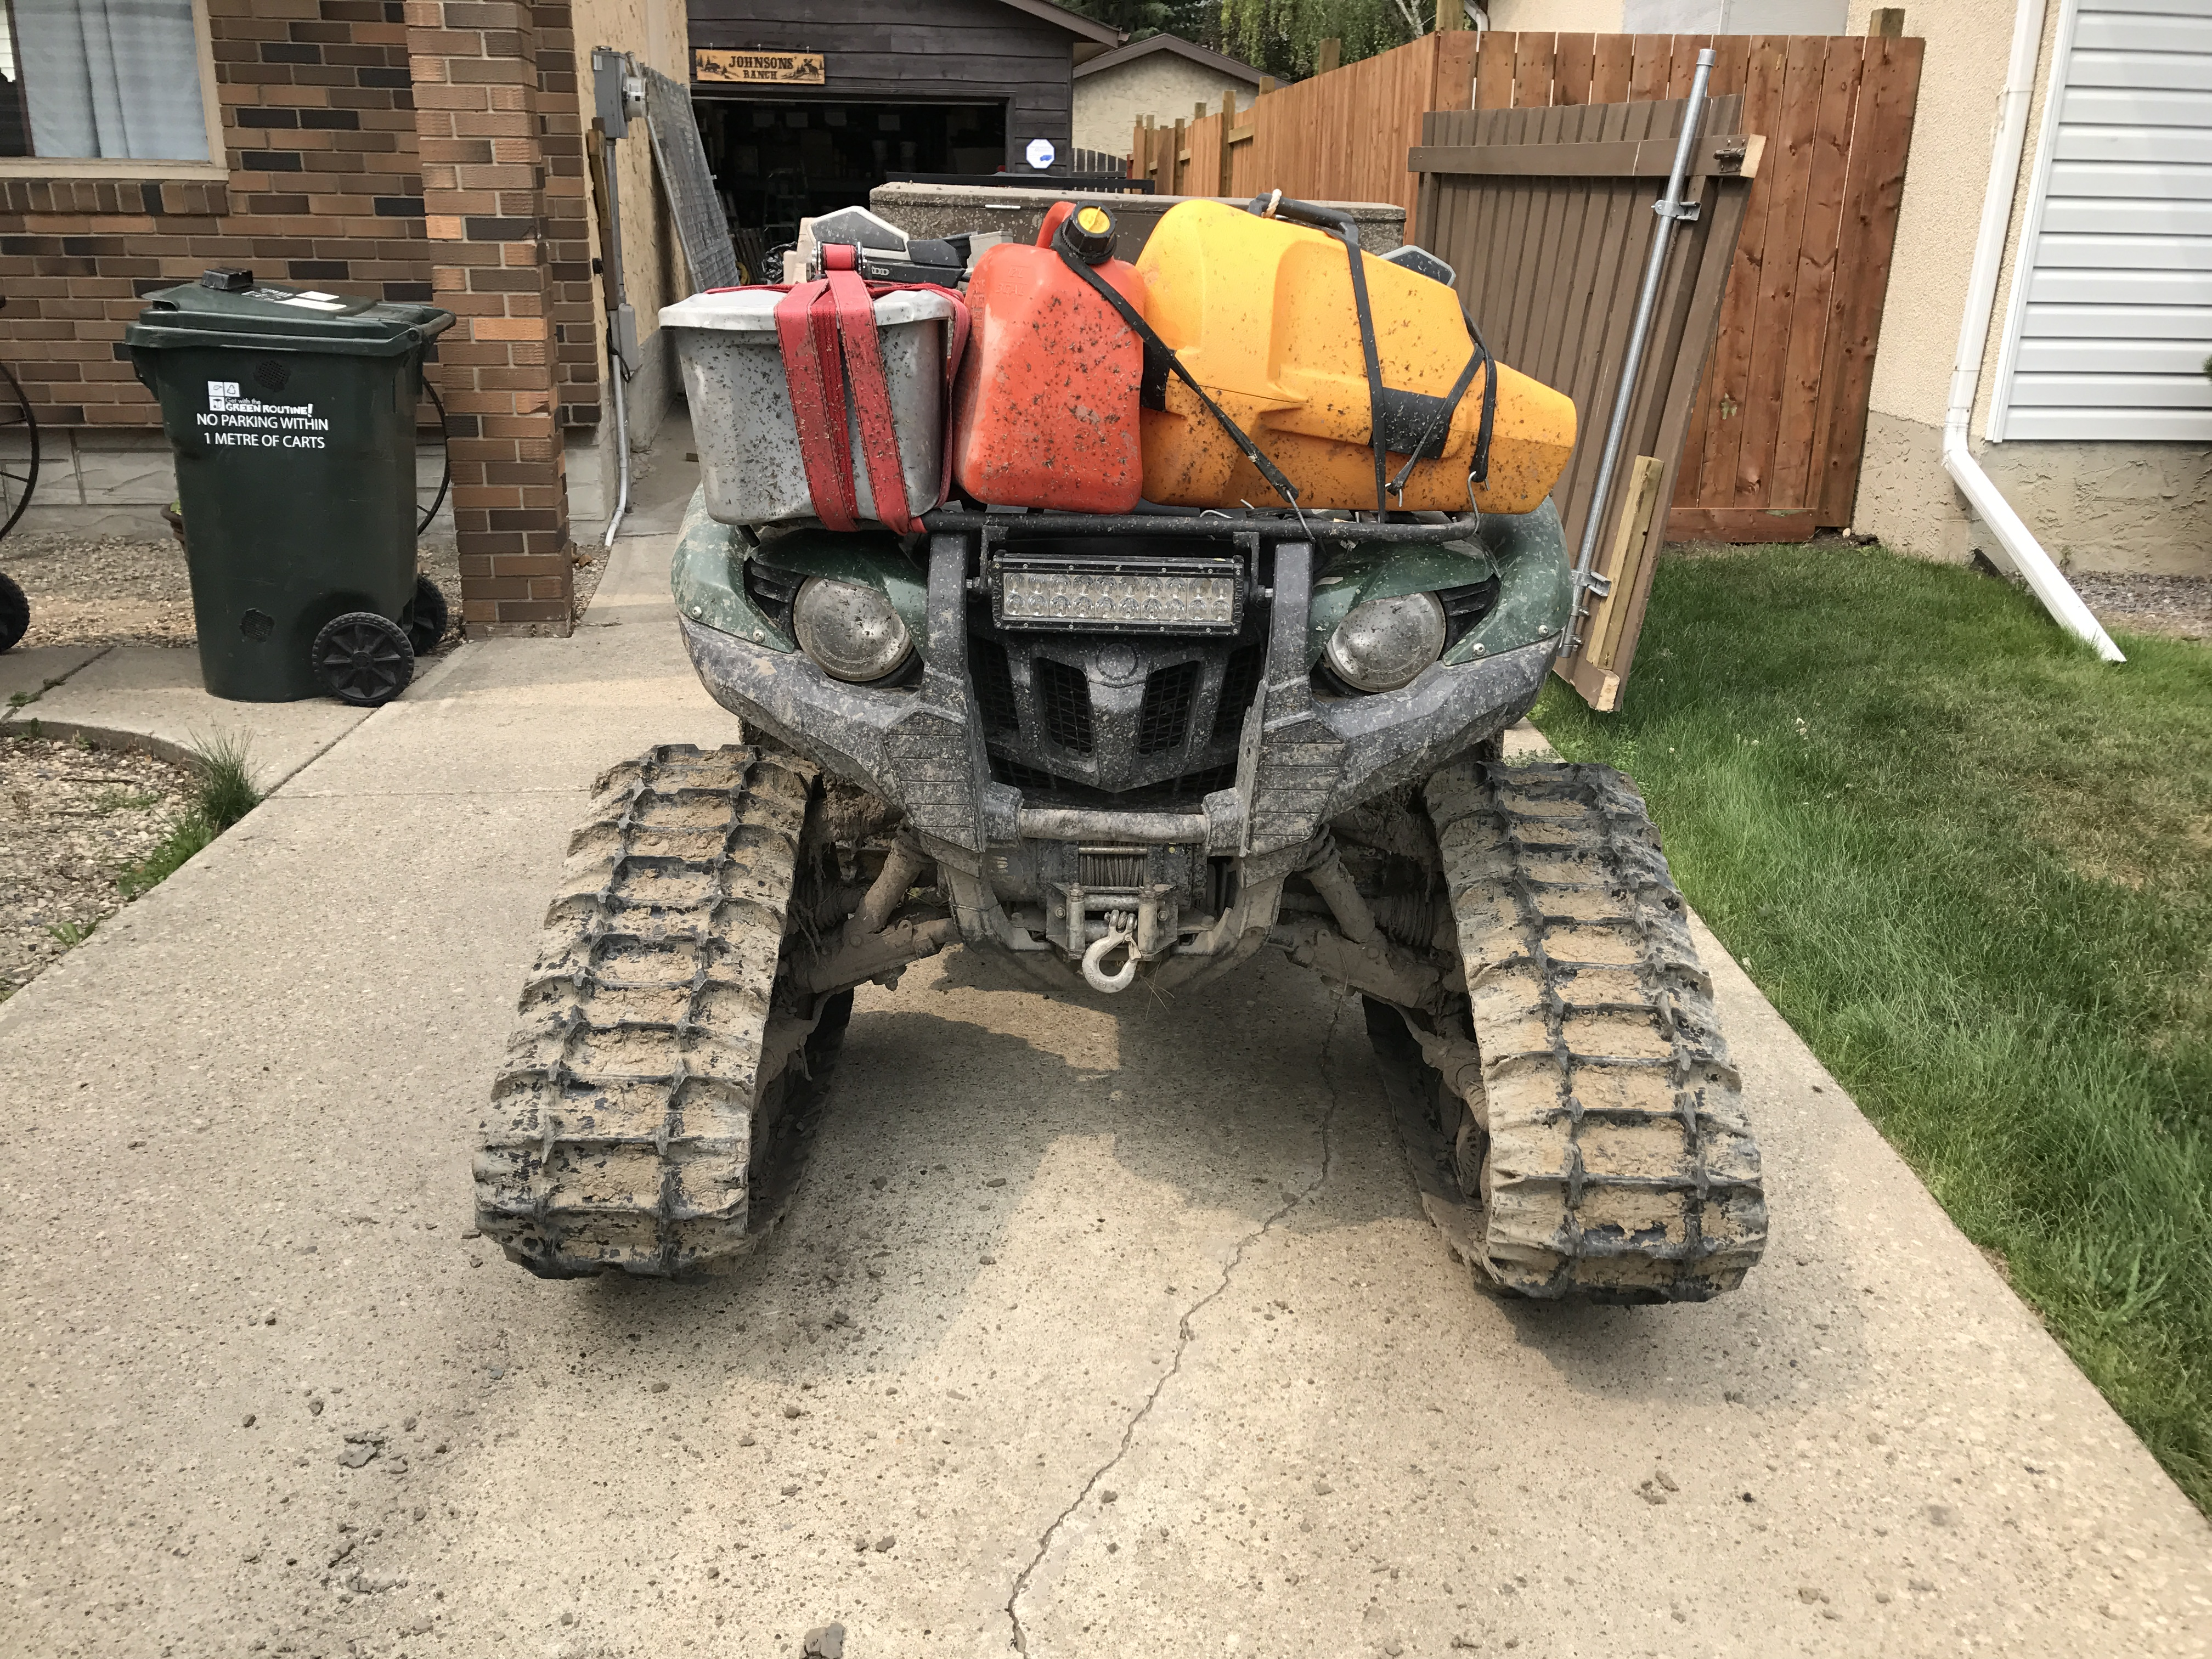 Yamaha Grizzly  Overheating Issues